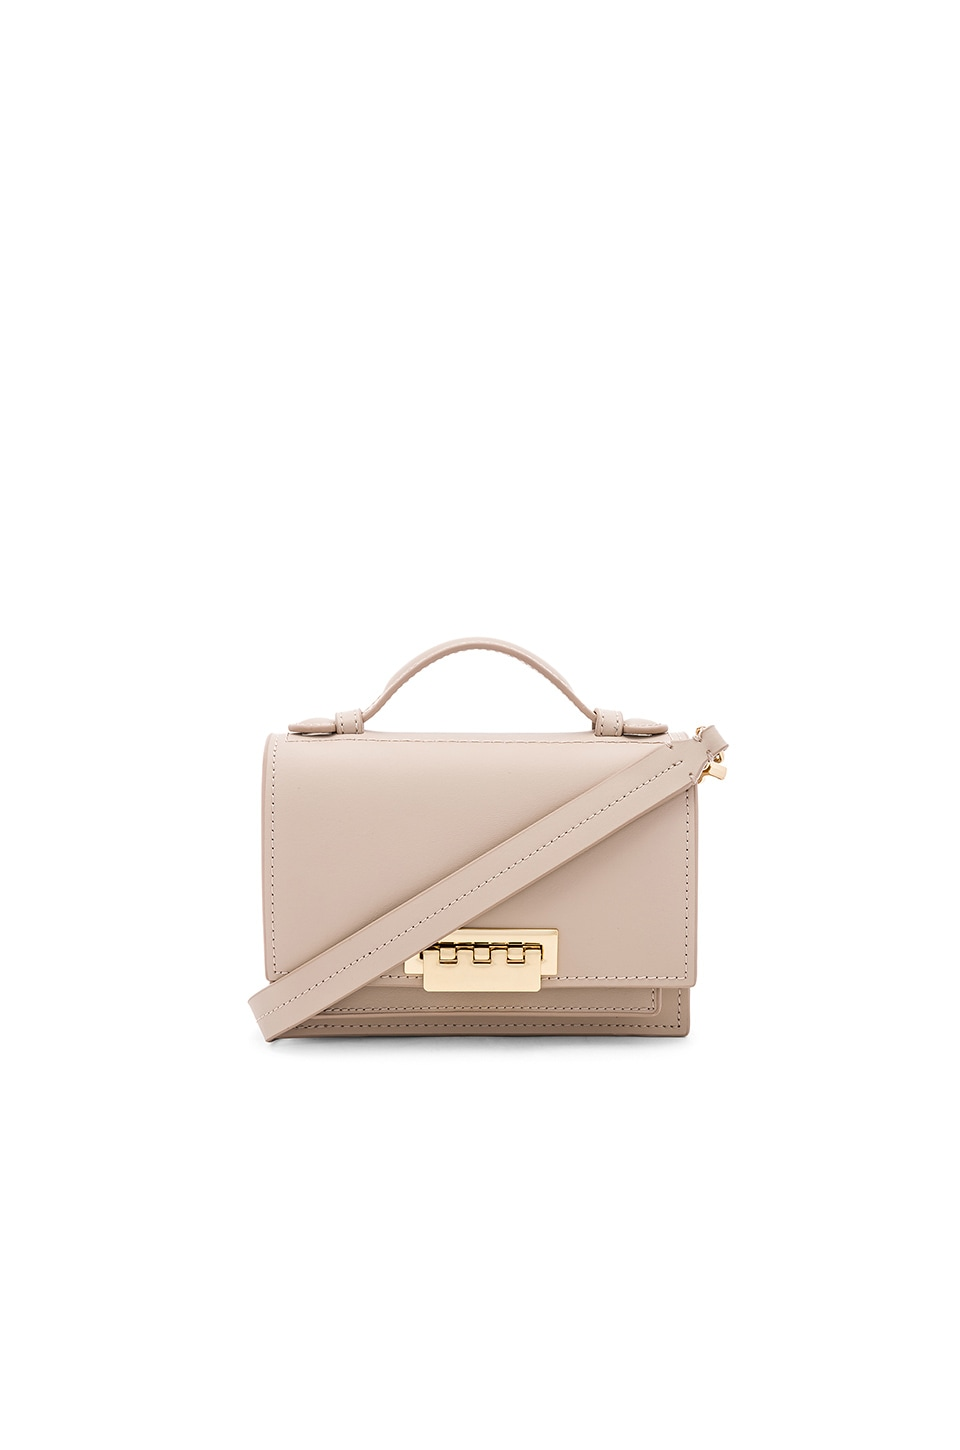 Zac Zac Posen Earthette Accordion Crossbody in Sand